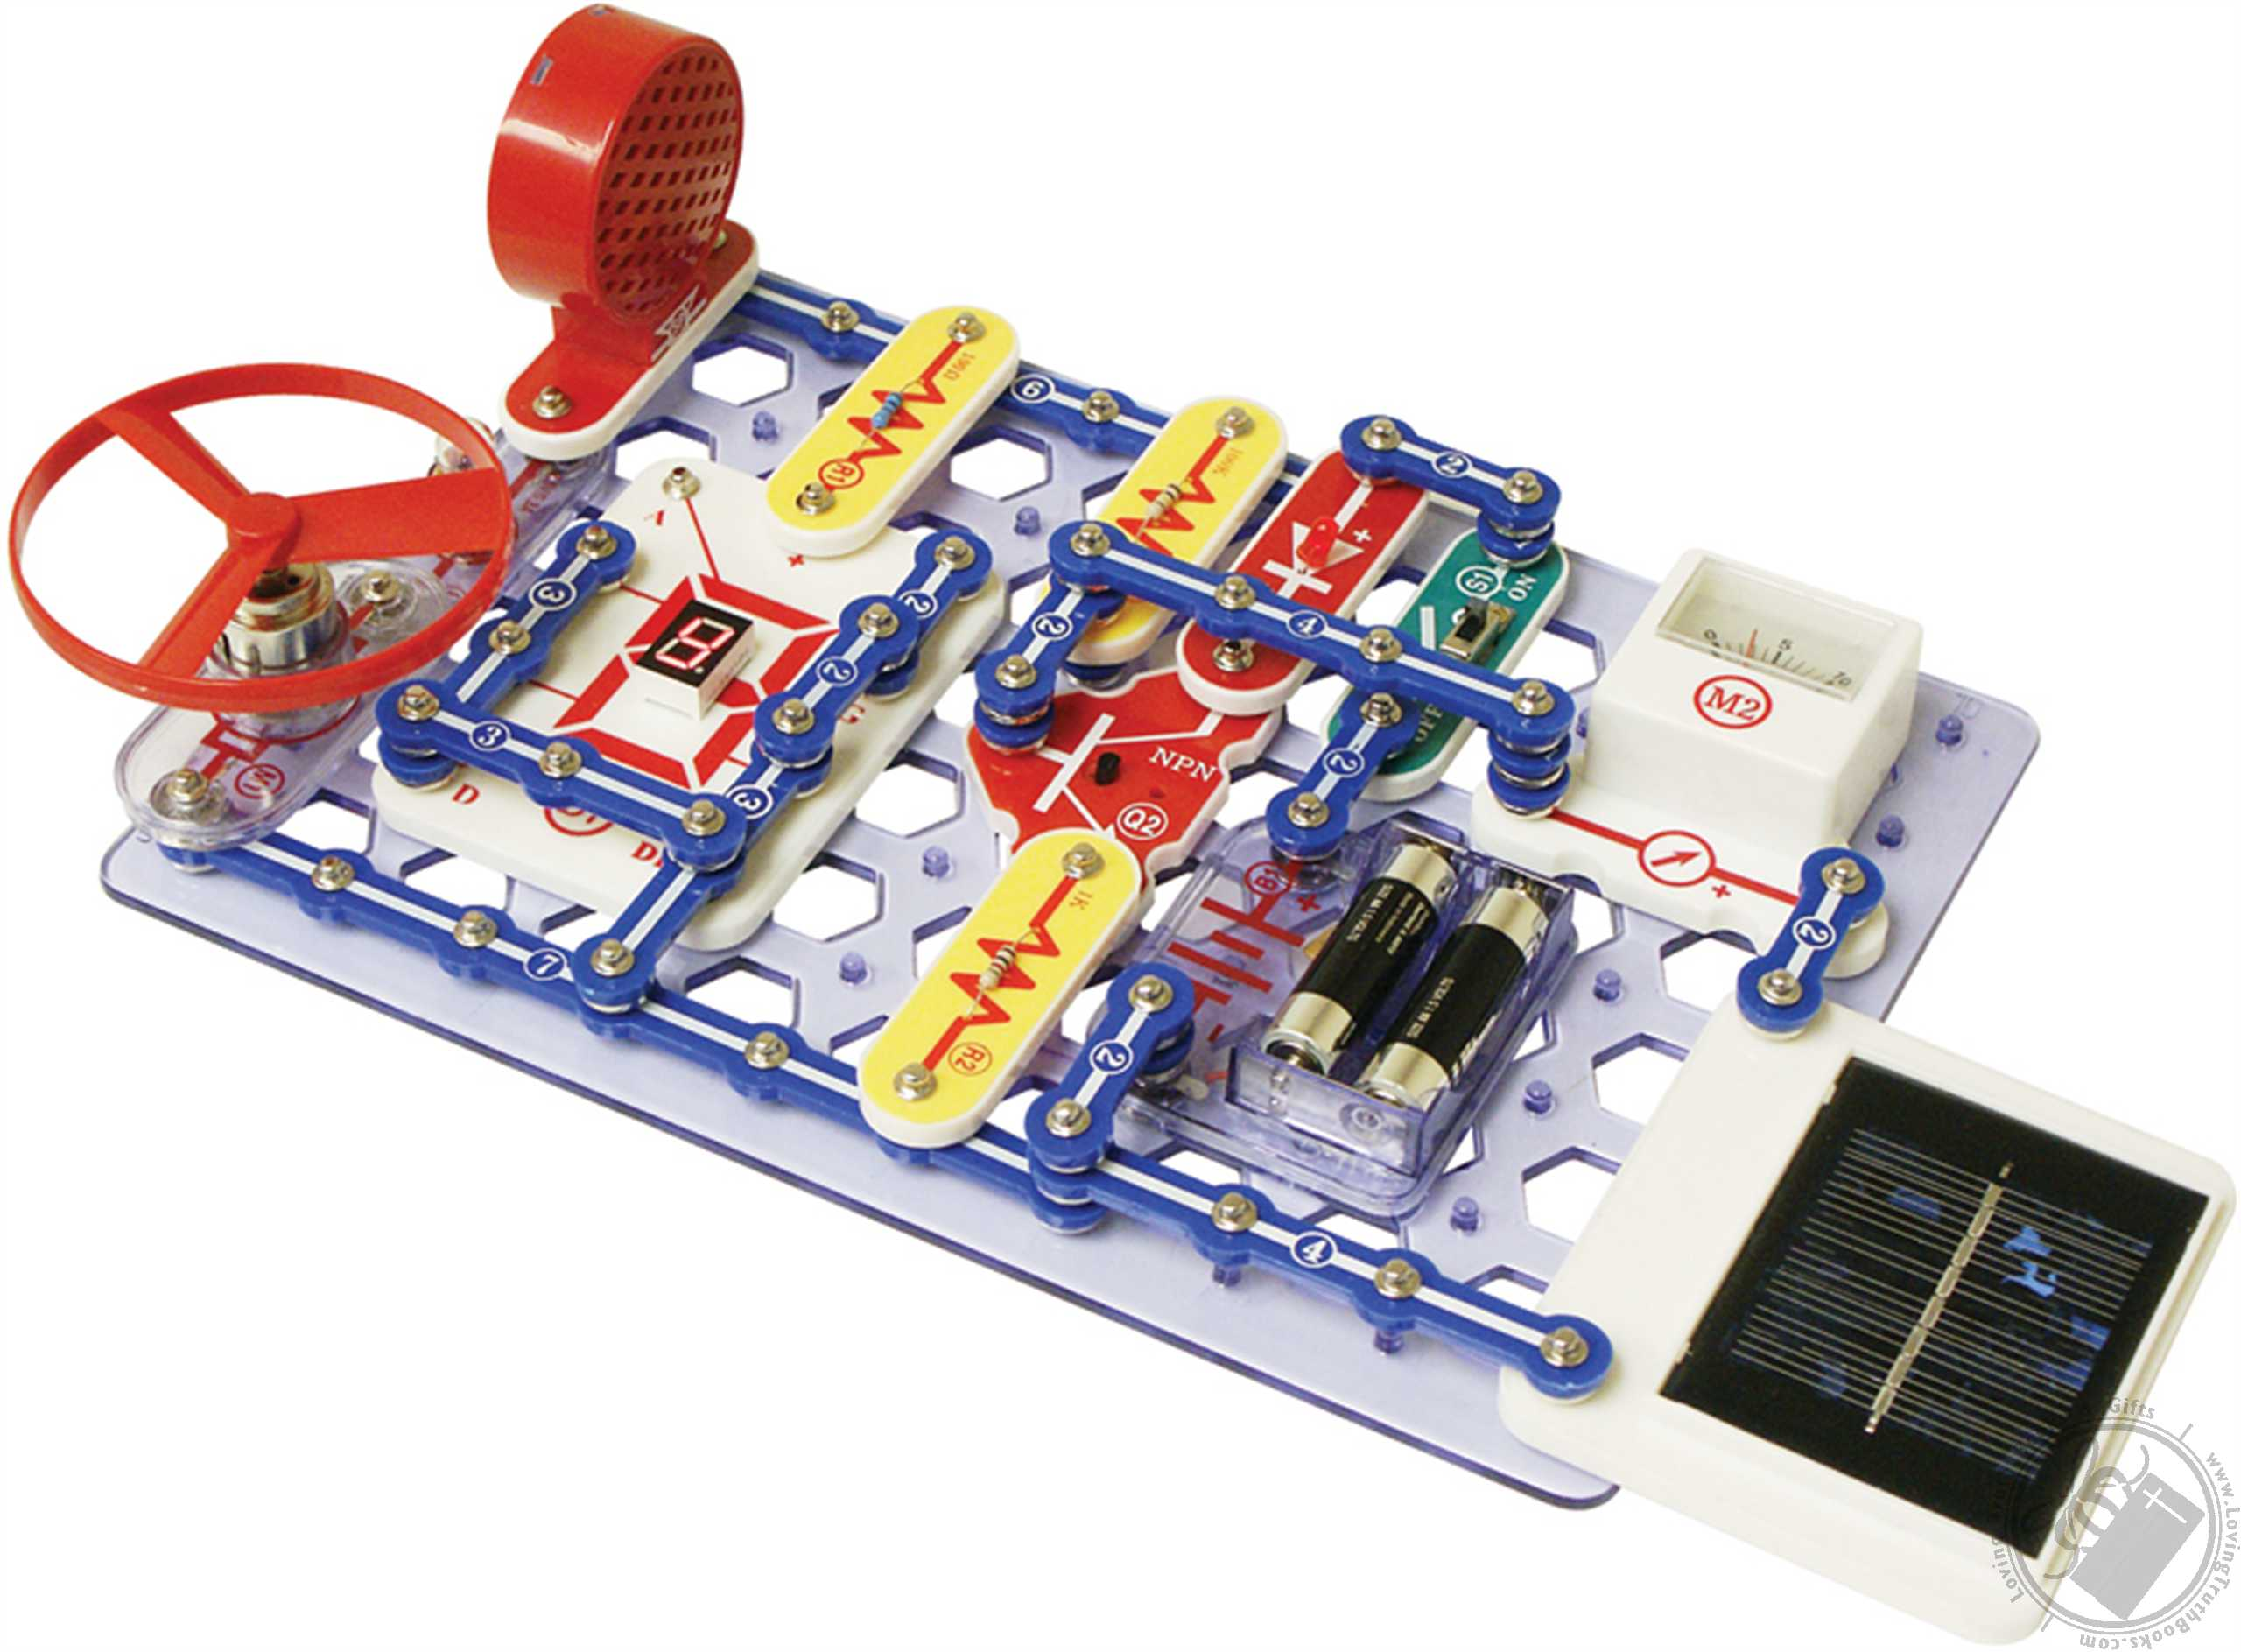 Snap Circuits Extreme Sc 750 With Computer Interface Electronic Basic Electronics Toys For Kids Jr 100 Views Click To Preview